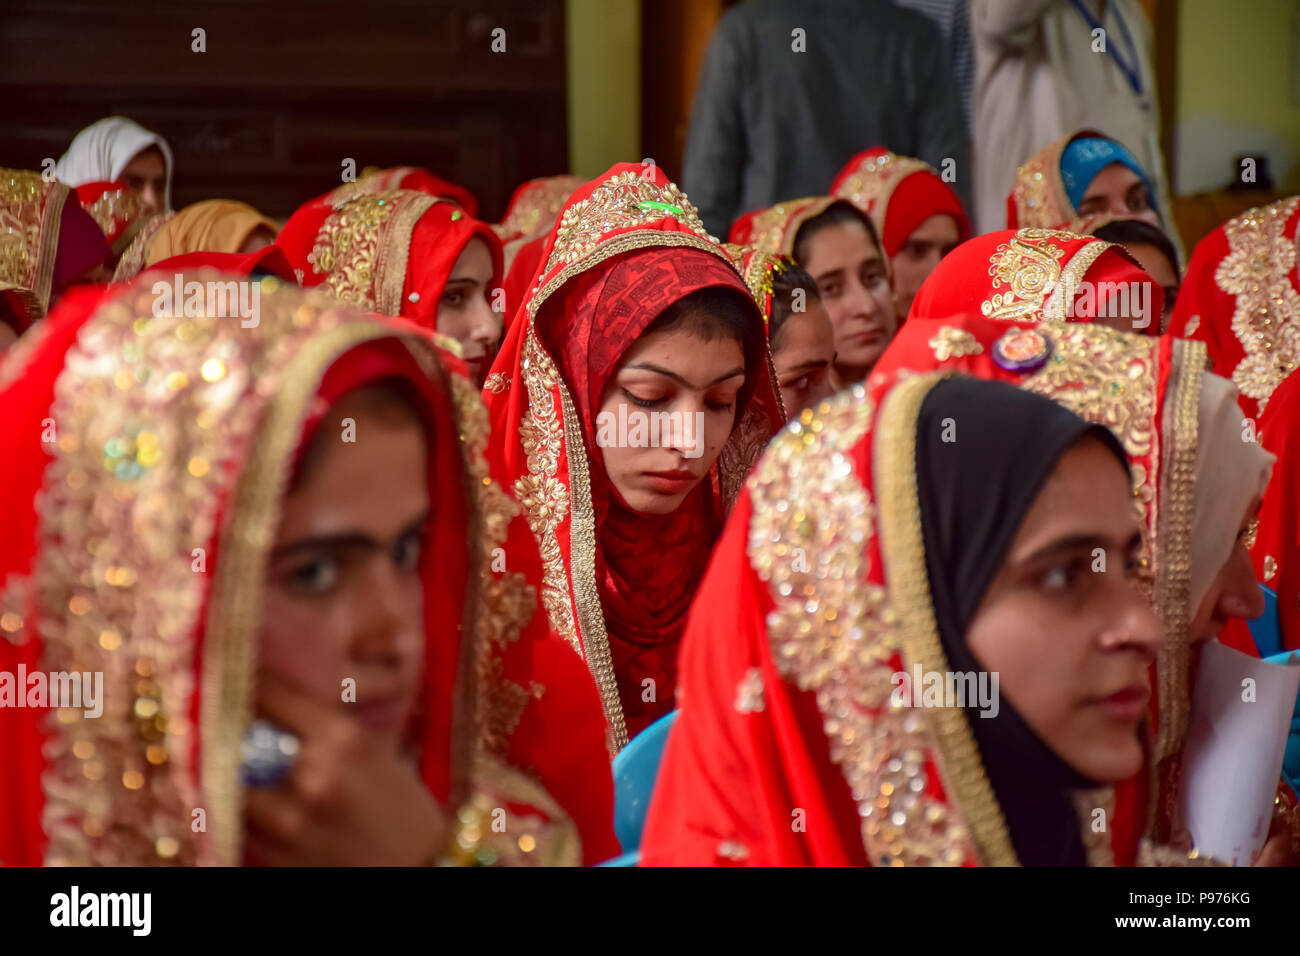 Srinagar, India. 15th July 2018. Kashmiri Muslim brides sit for a mass marriage event in Srinagar, Indian controlled Kashmir on Sunday. Mass wedding of 105 Muslim couples held in Srinagar organised by social welfare organisation primarily to help the economically backward families who cannot afford the high costs of the ceremony, dowry and expensive gifts, that still prevails in many communities of India. Credit: SOPA Images Limited/Alamy Live News - Stock Image